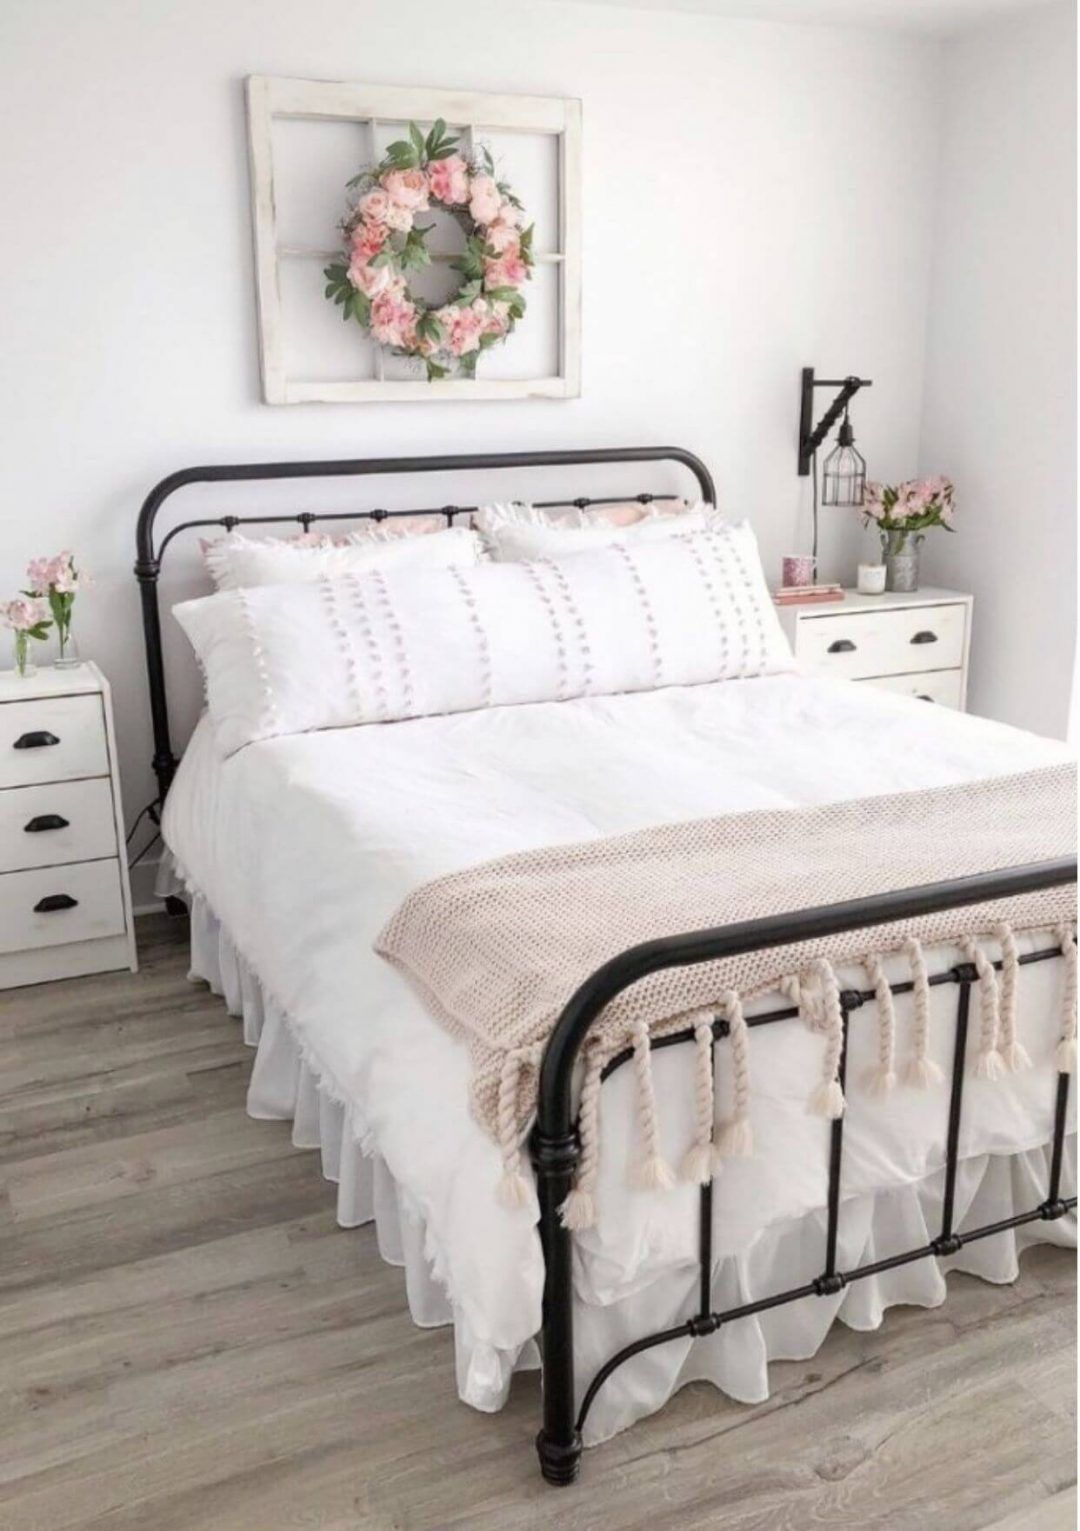 25 Fashionable Shabby Chic Bedroom (All Are Stylish!) - Q13